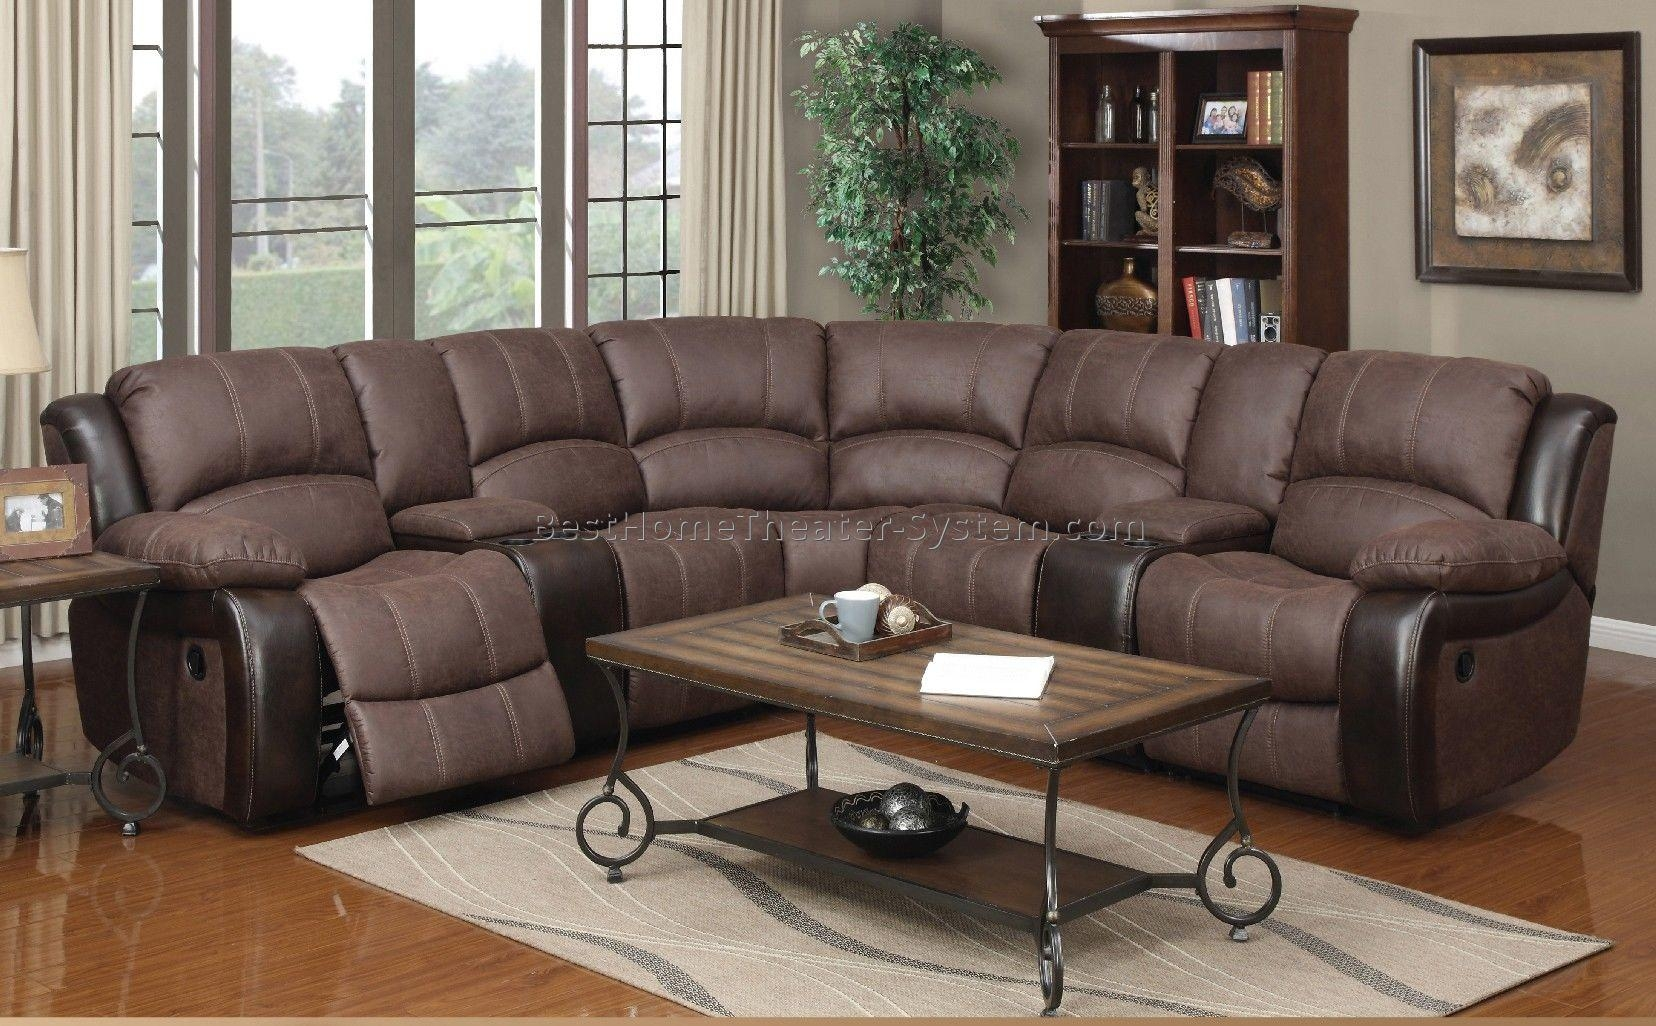 Sectional Home Theater Seating 6 | Best Home Theater Systems Within Theatre Sectional Sofas (Image 15 of 20)